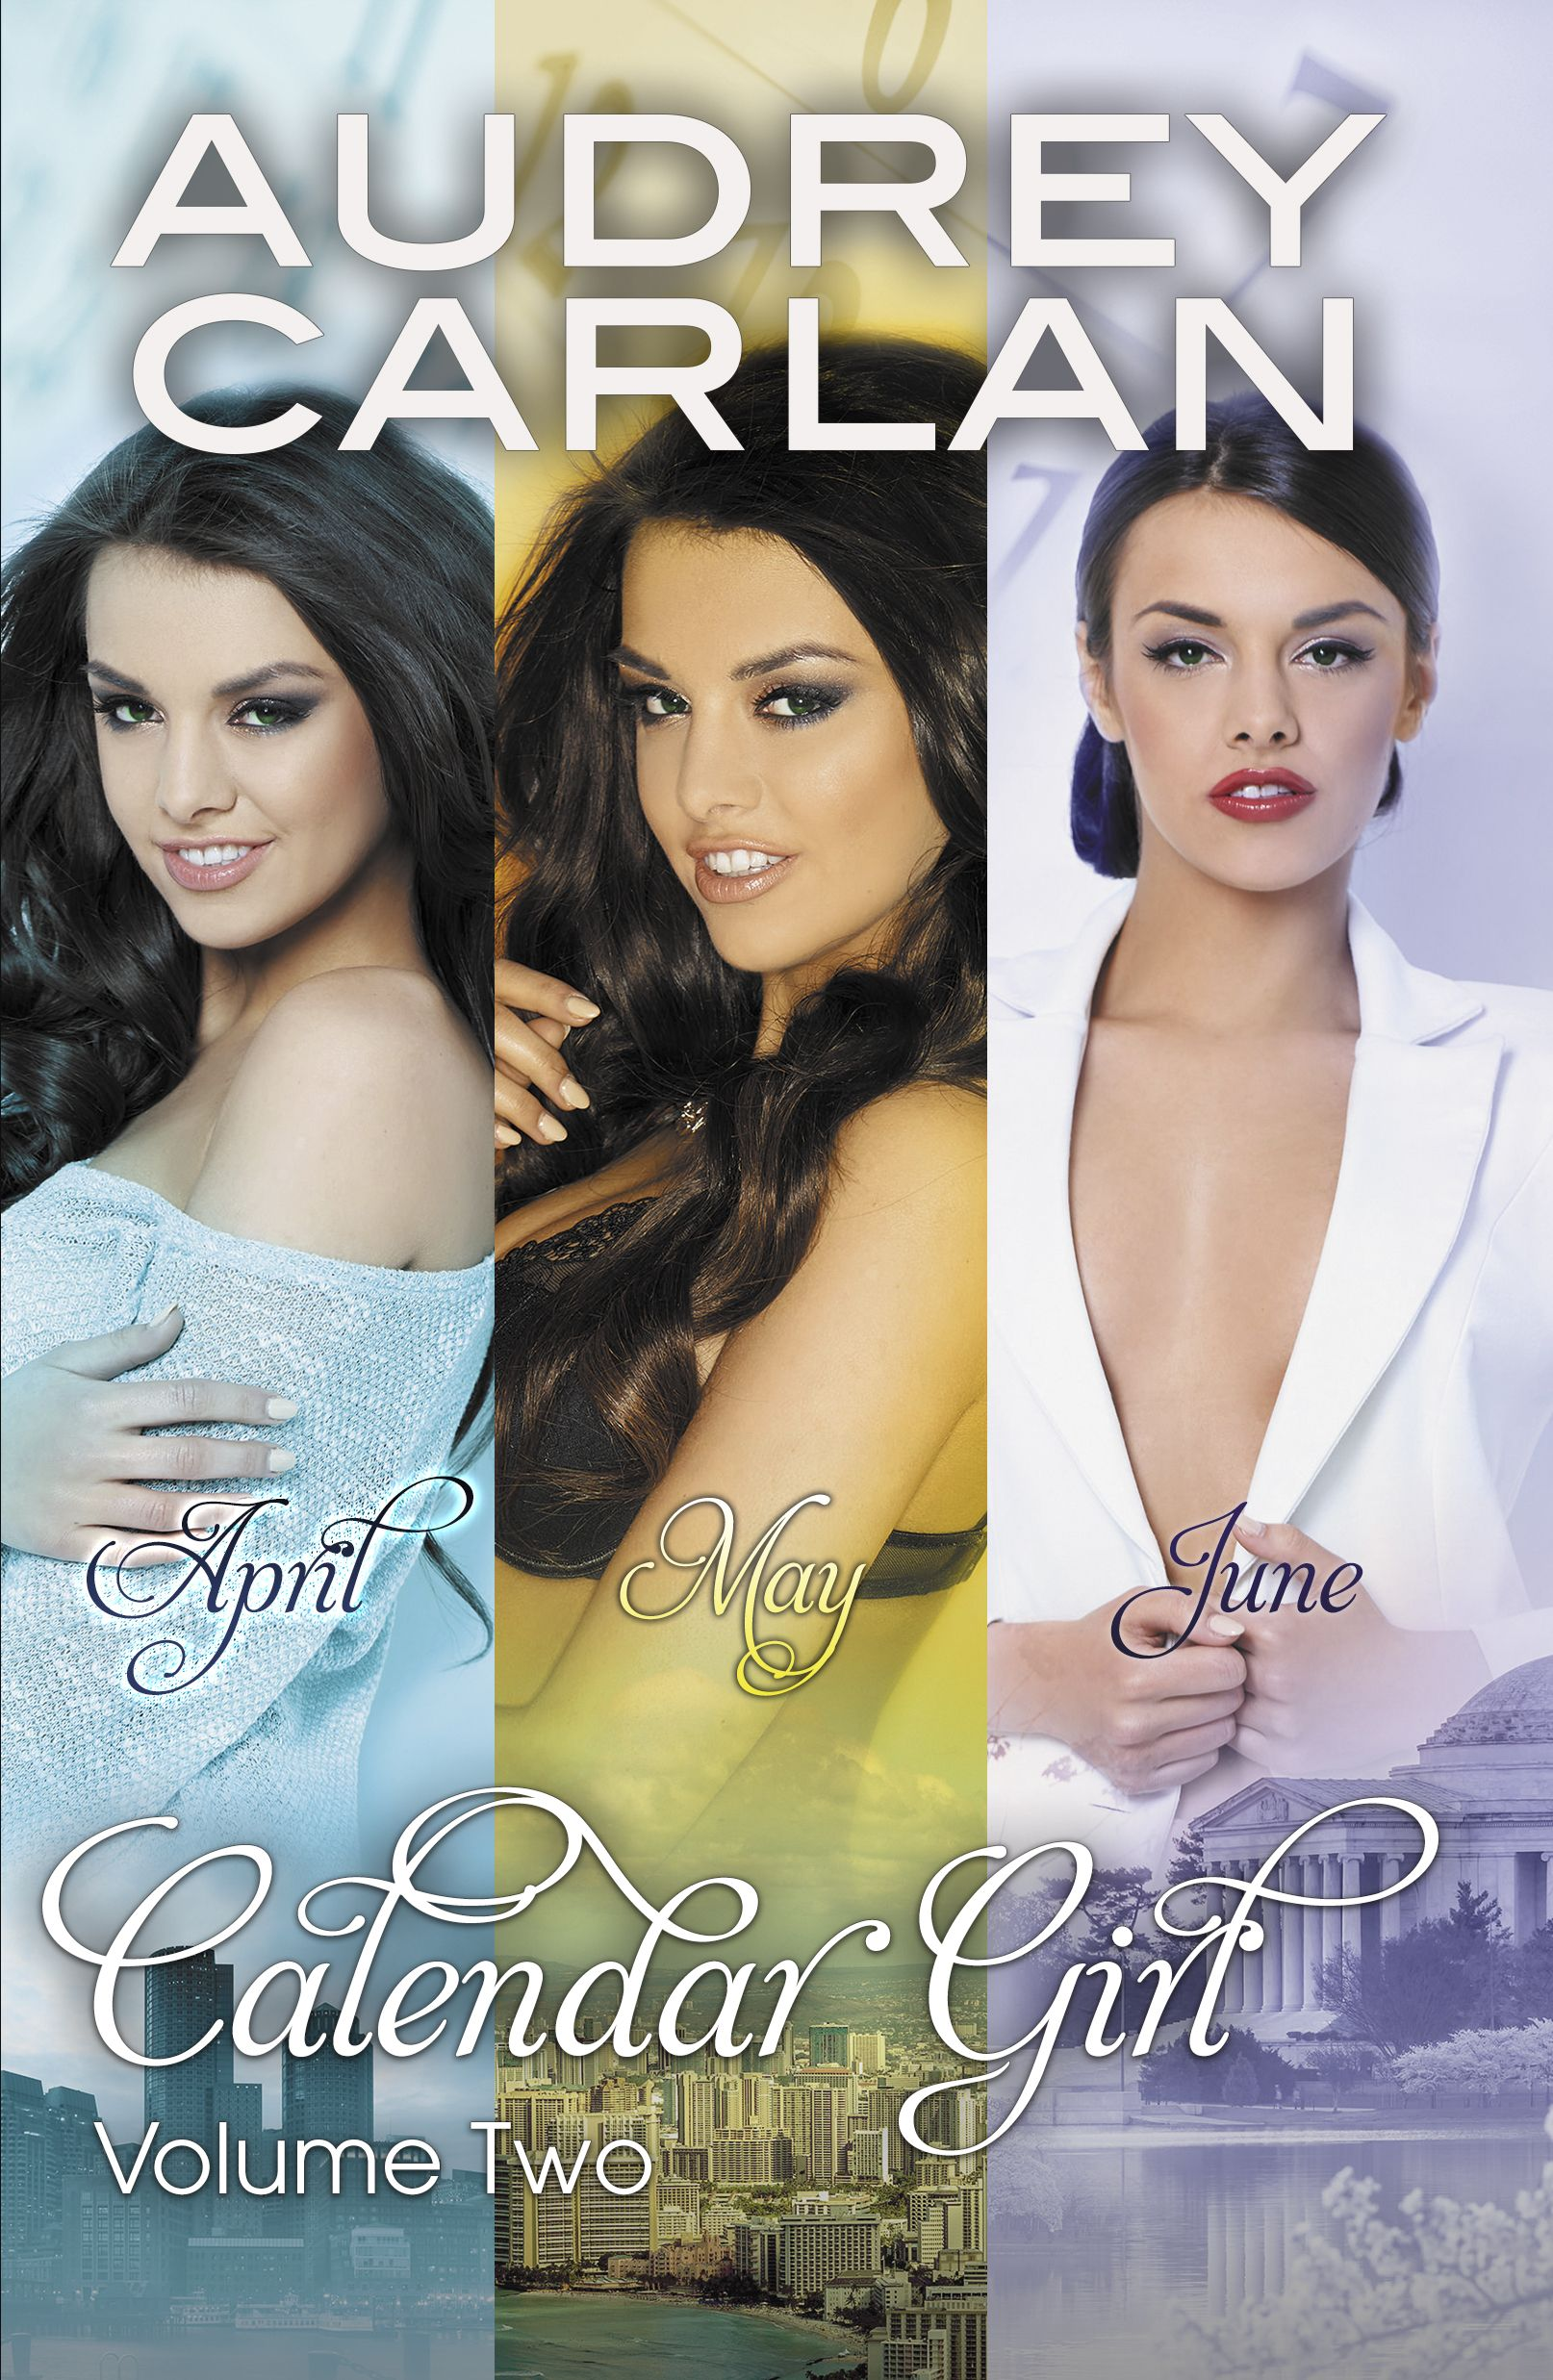 June Calendar Girl Read : Calendar girl volume april may june decided to rate